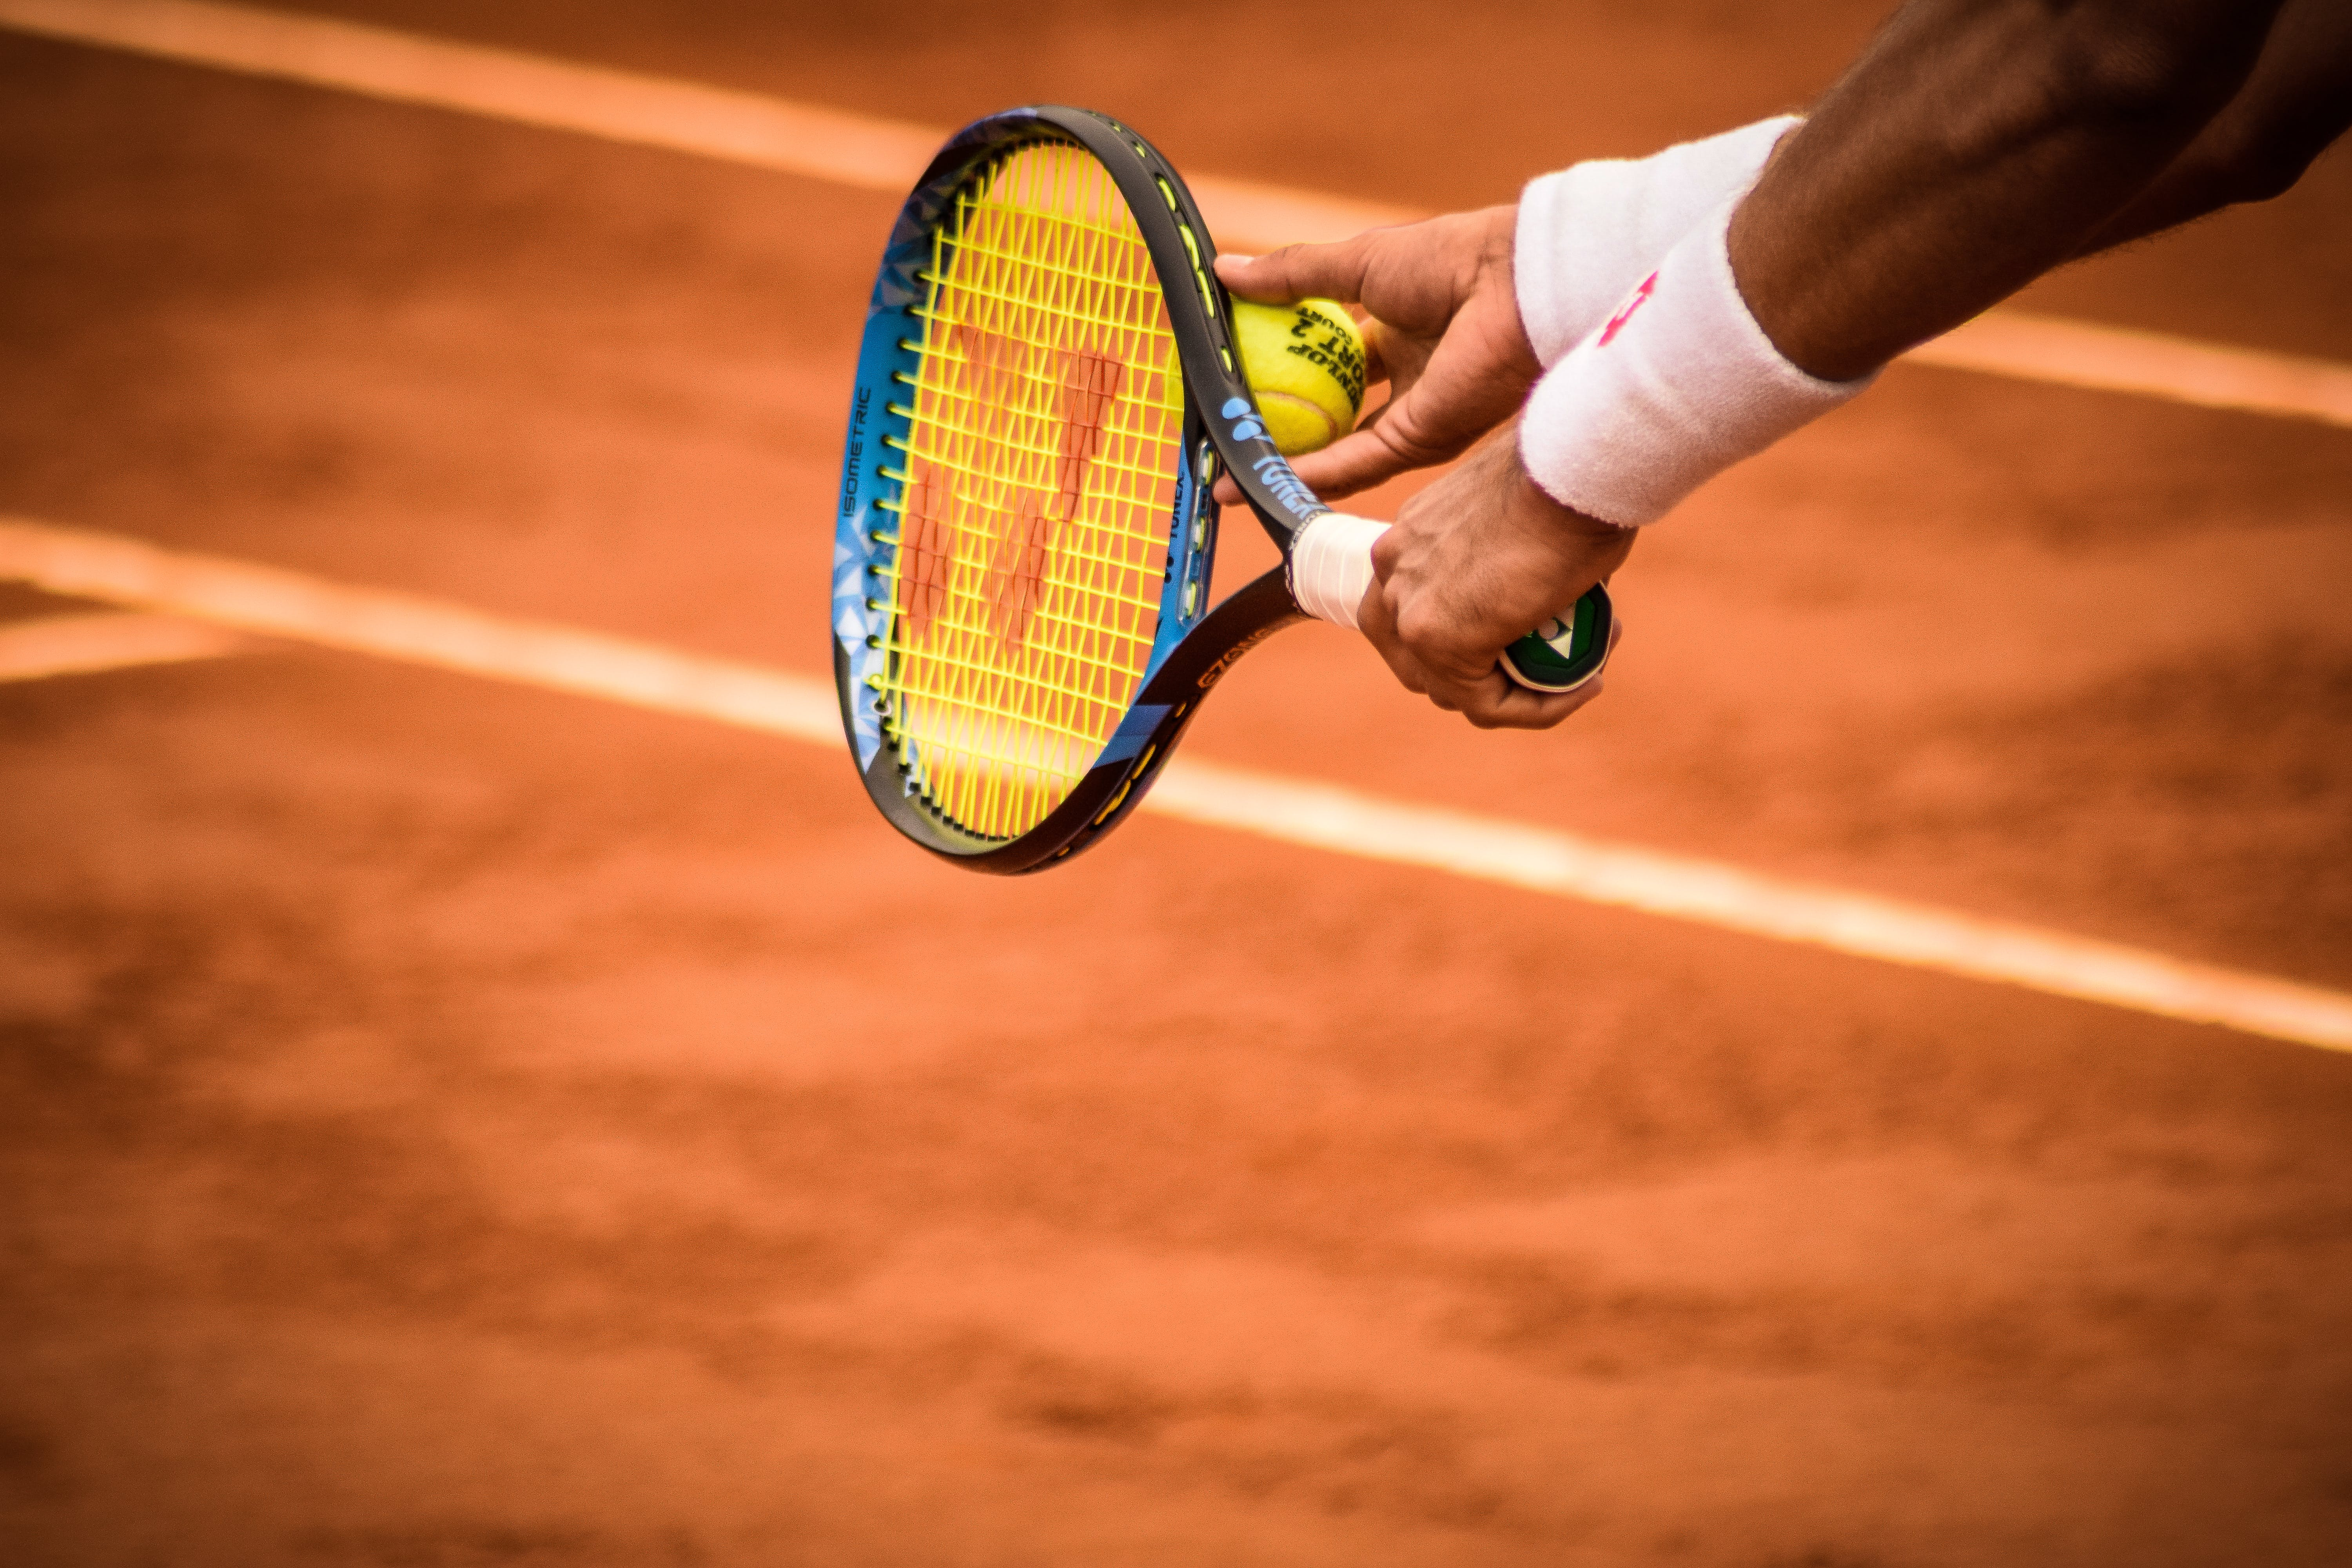 Close-Up Photo of Person Holding Tennis Racket and Ball